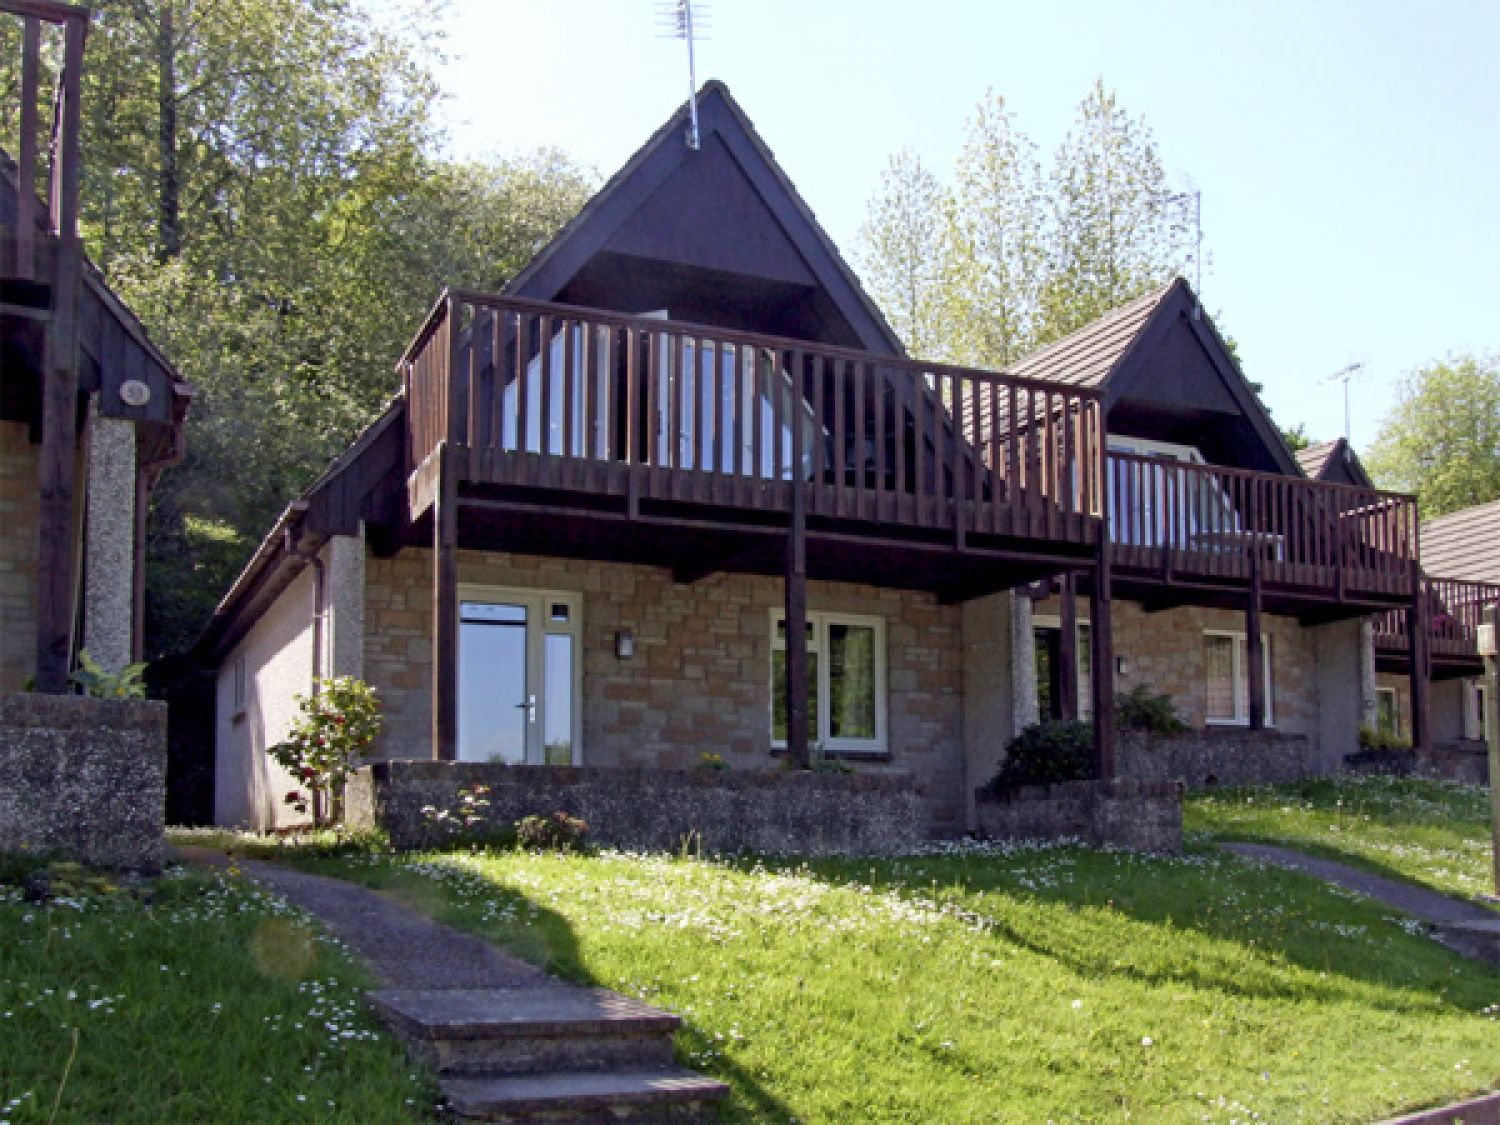 No 50 Valley Lodge